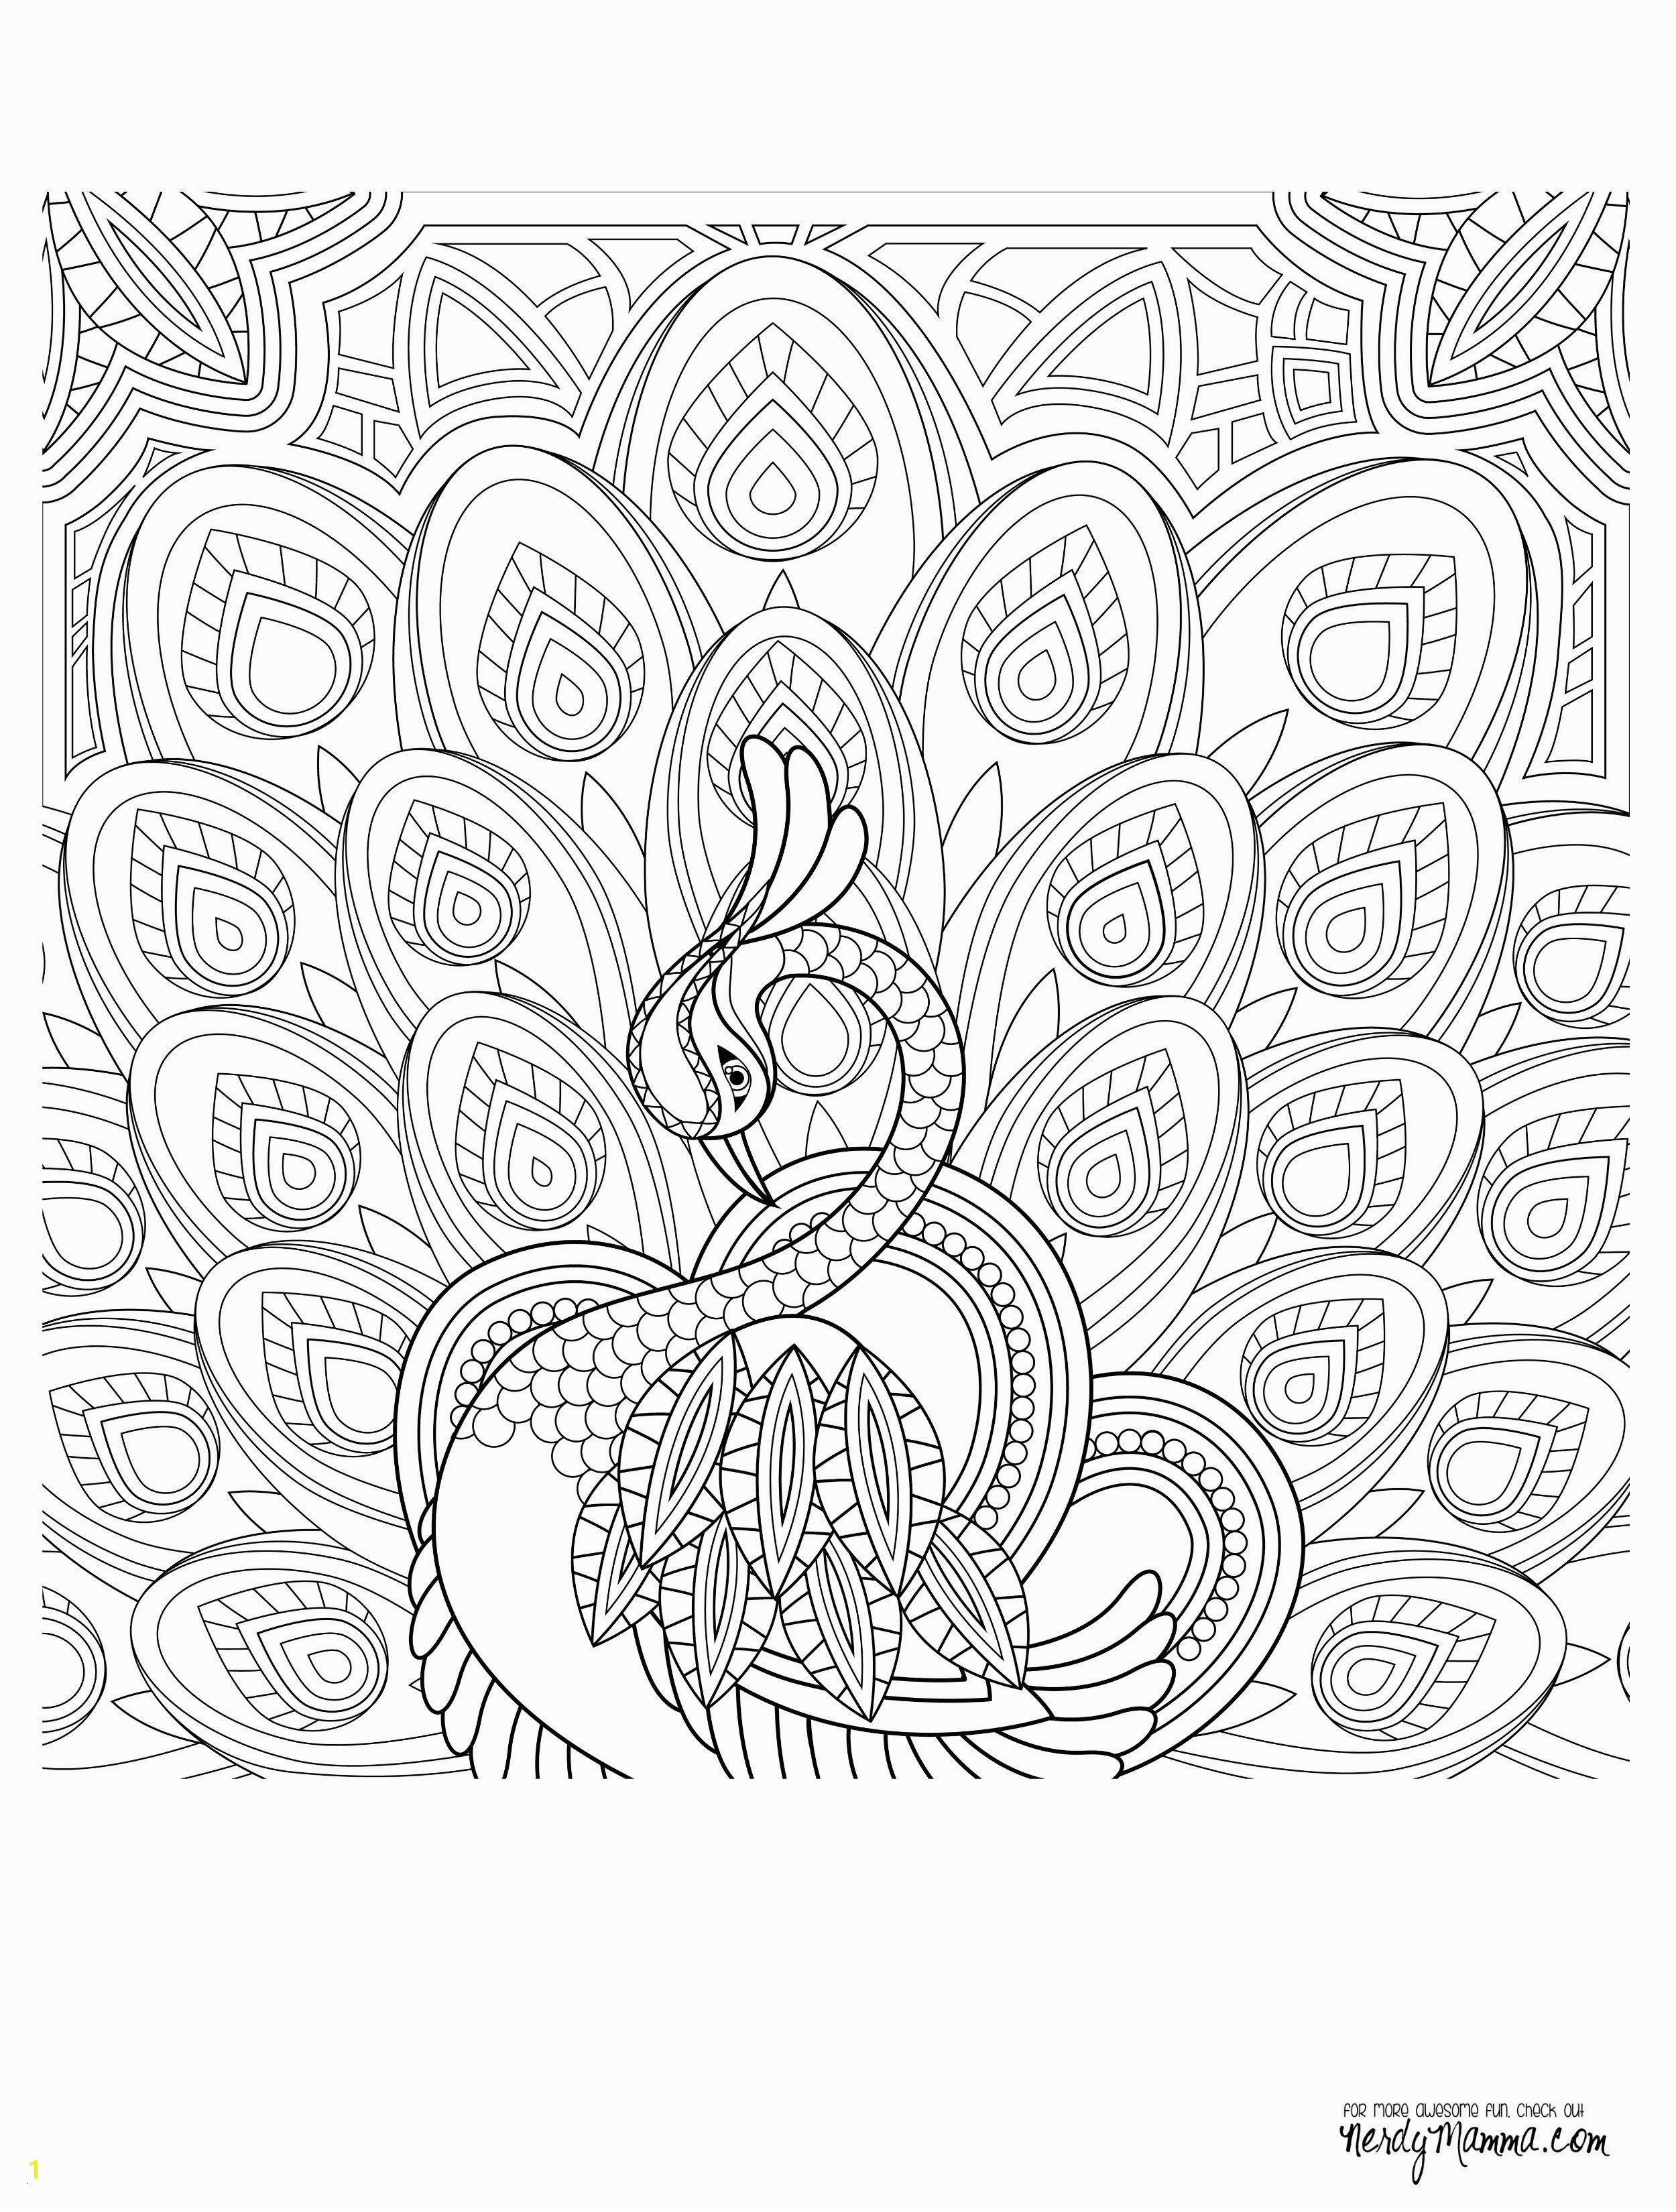 Idiom Coloring Pages 36 Beautiful I Coloring Pages Cloud9vegas